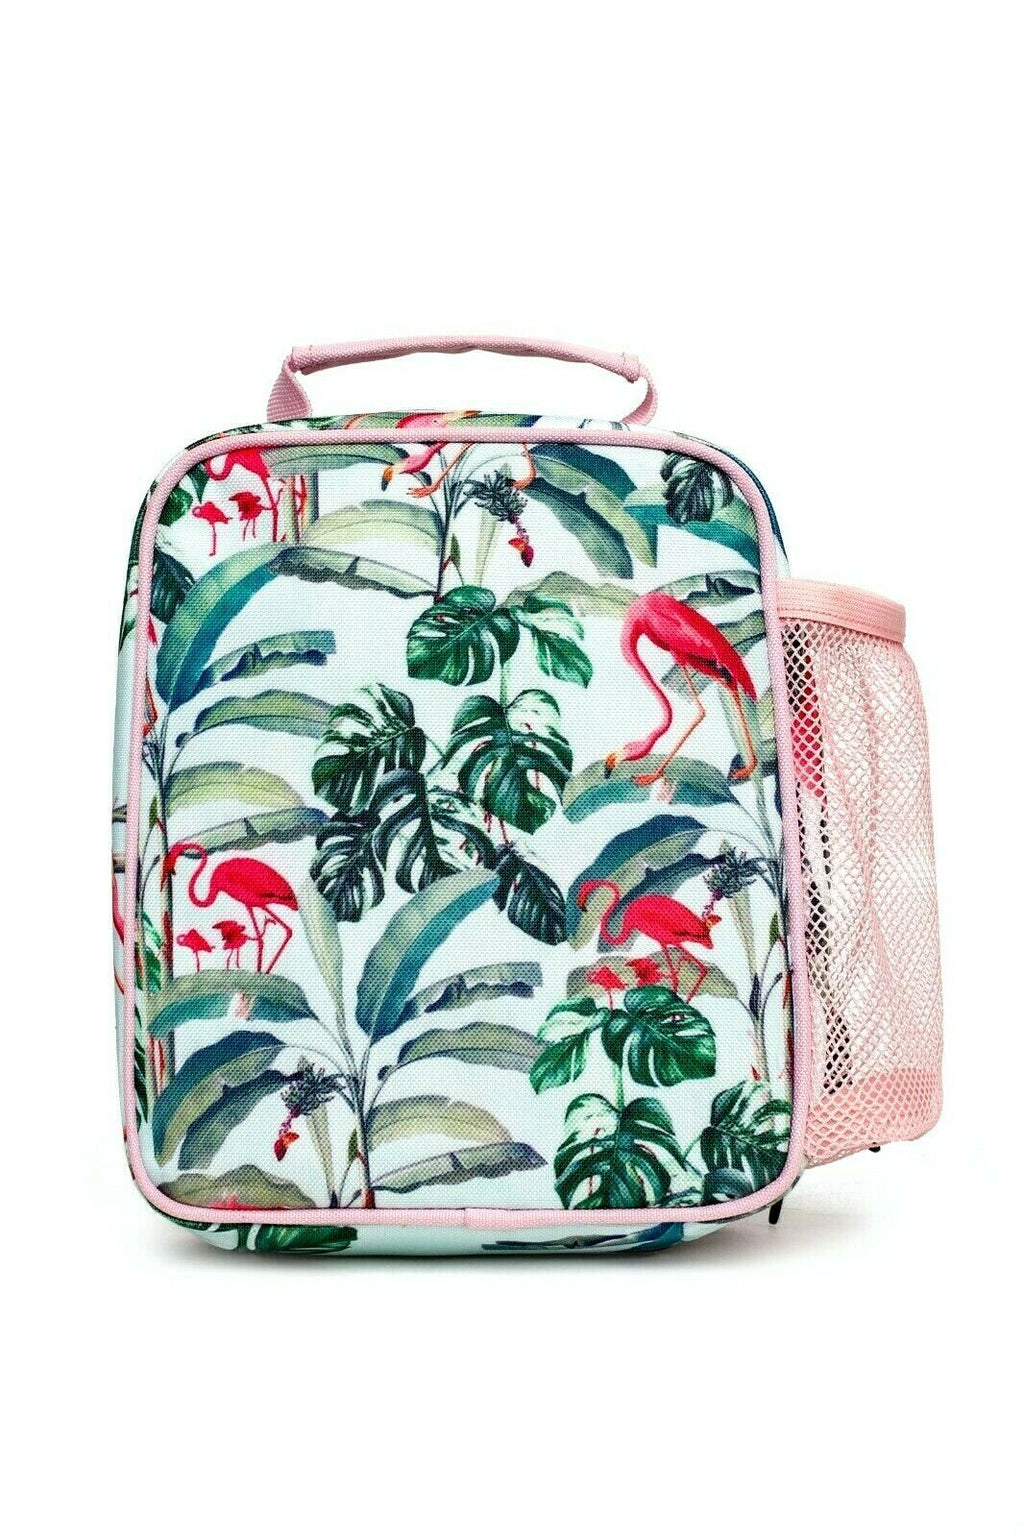 HYPE FLAMINGO PARADISE LUNCH BOX - MULTI